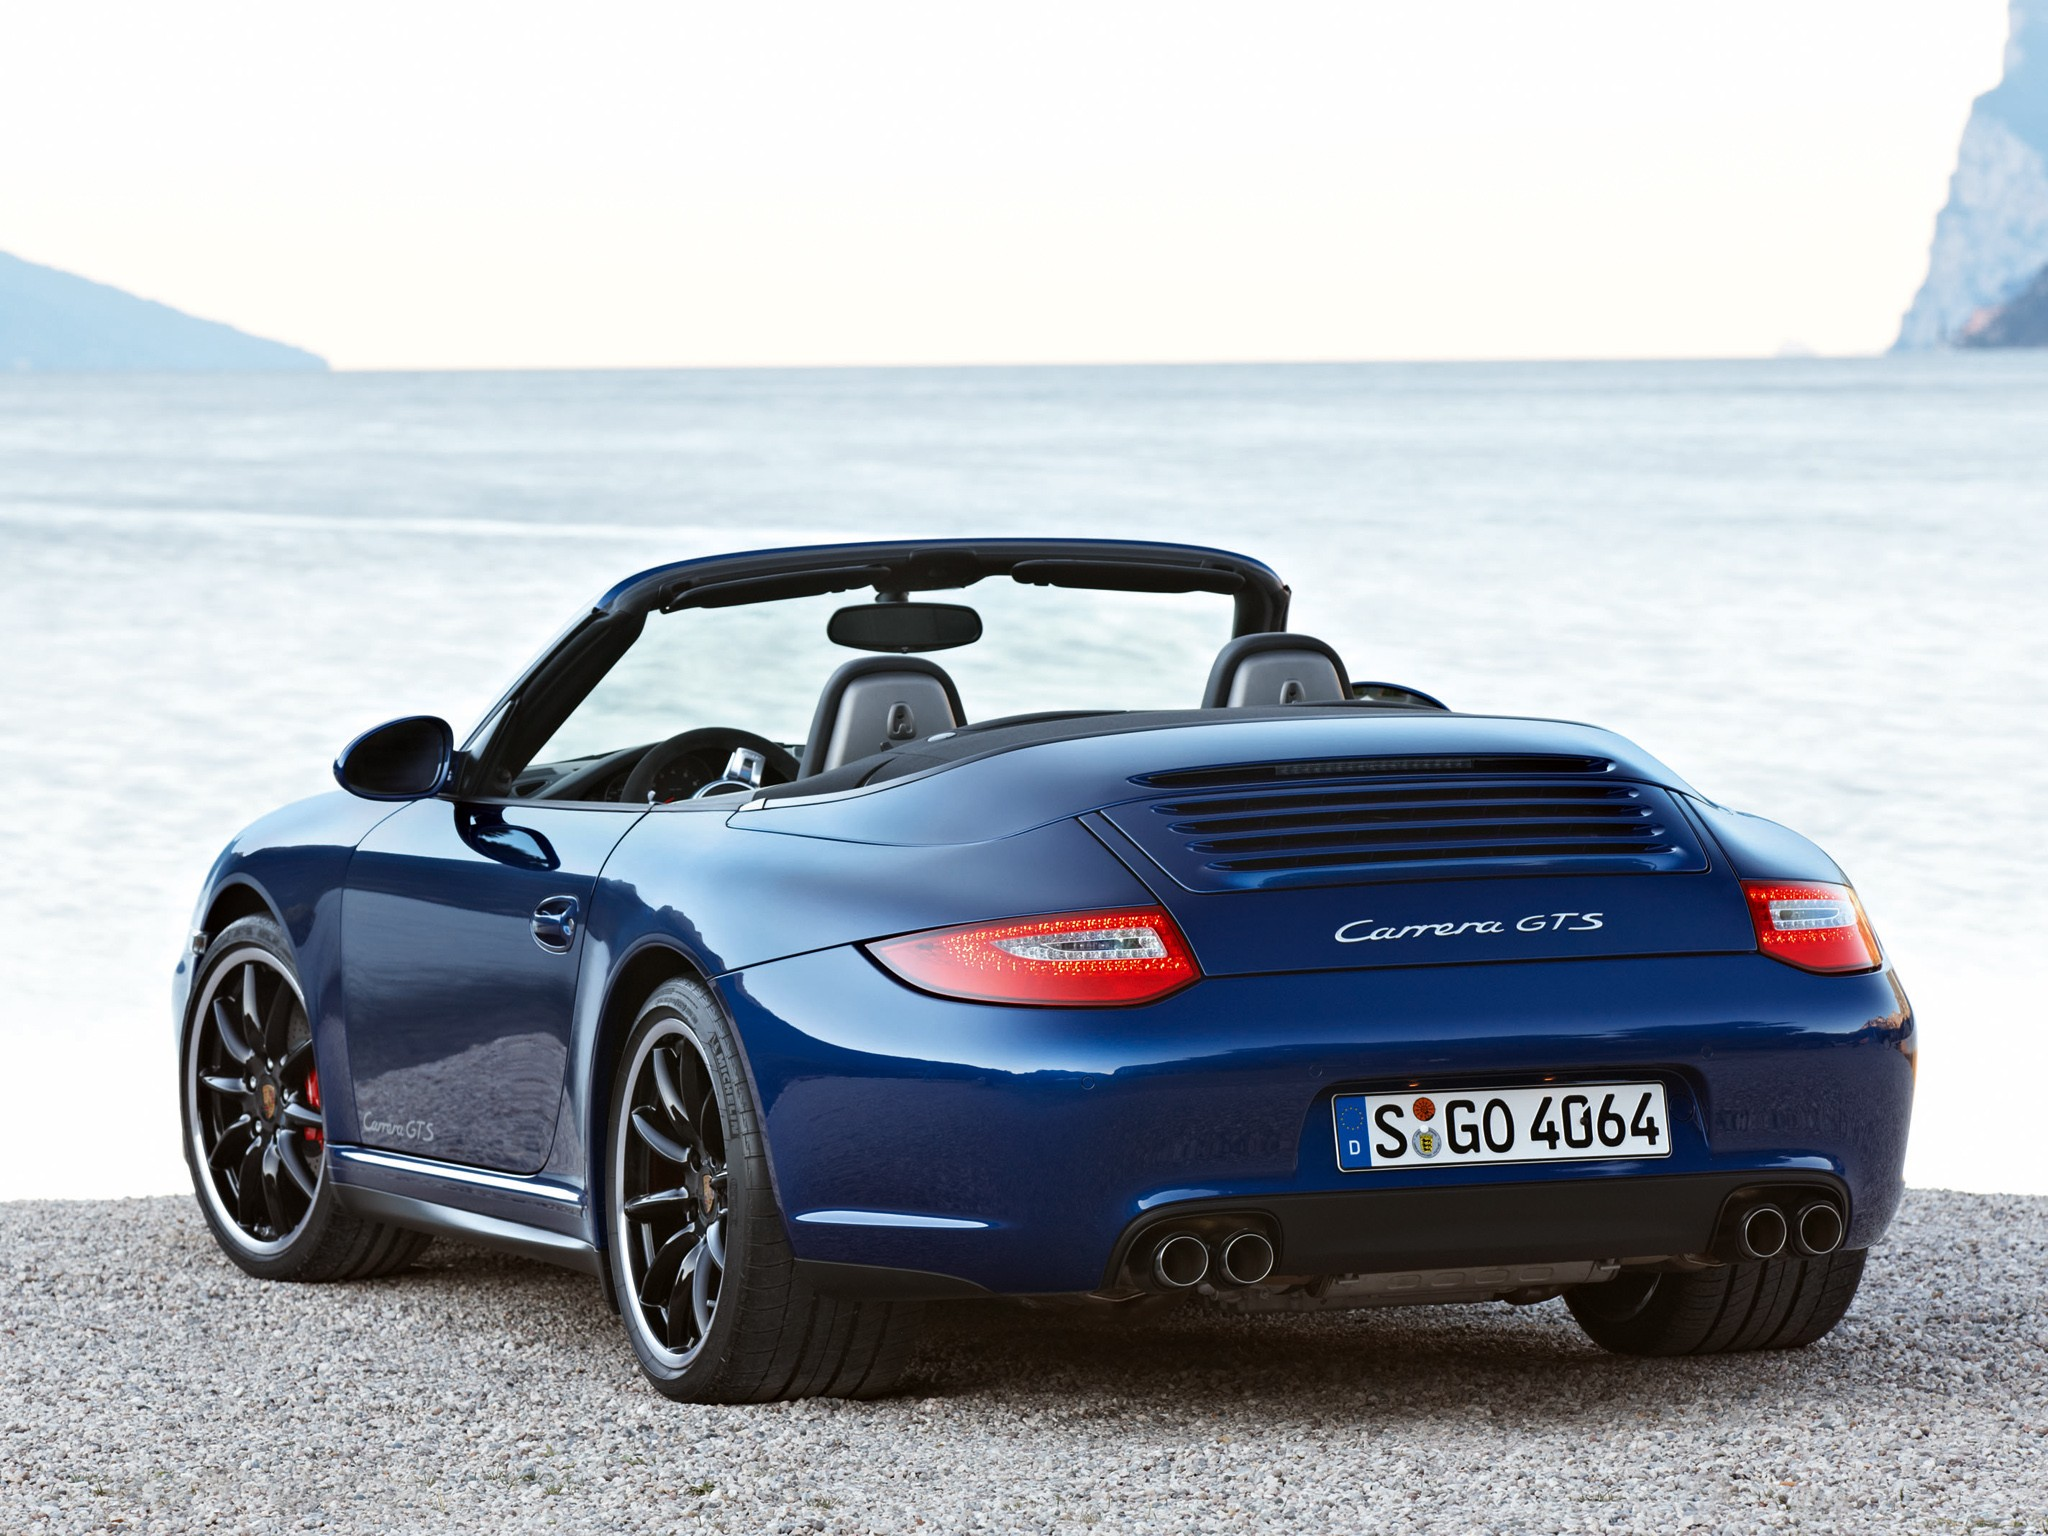 porsche 911 carrera gts cabriolet 997 specs 2010 2011 autoevolution. Black Bedroom Furniture Sets. Home Design Ideas